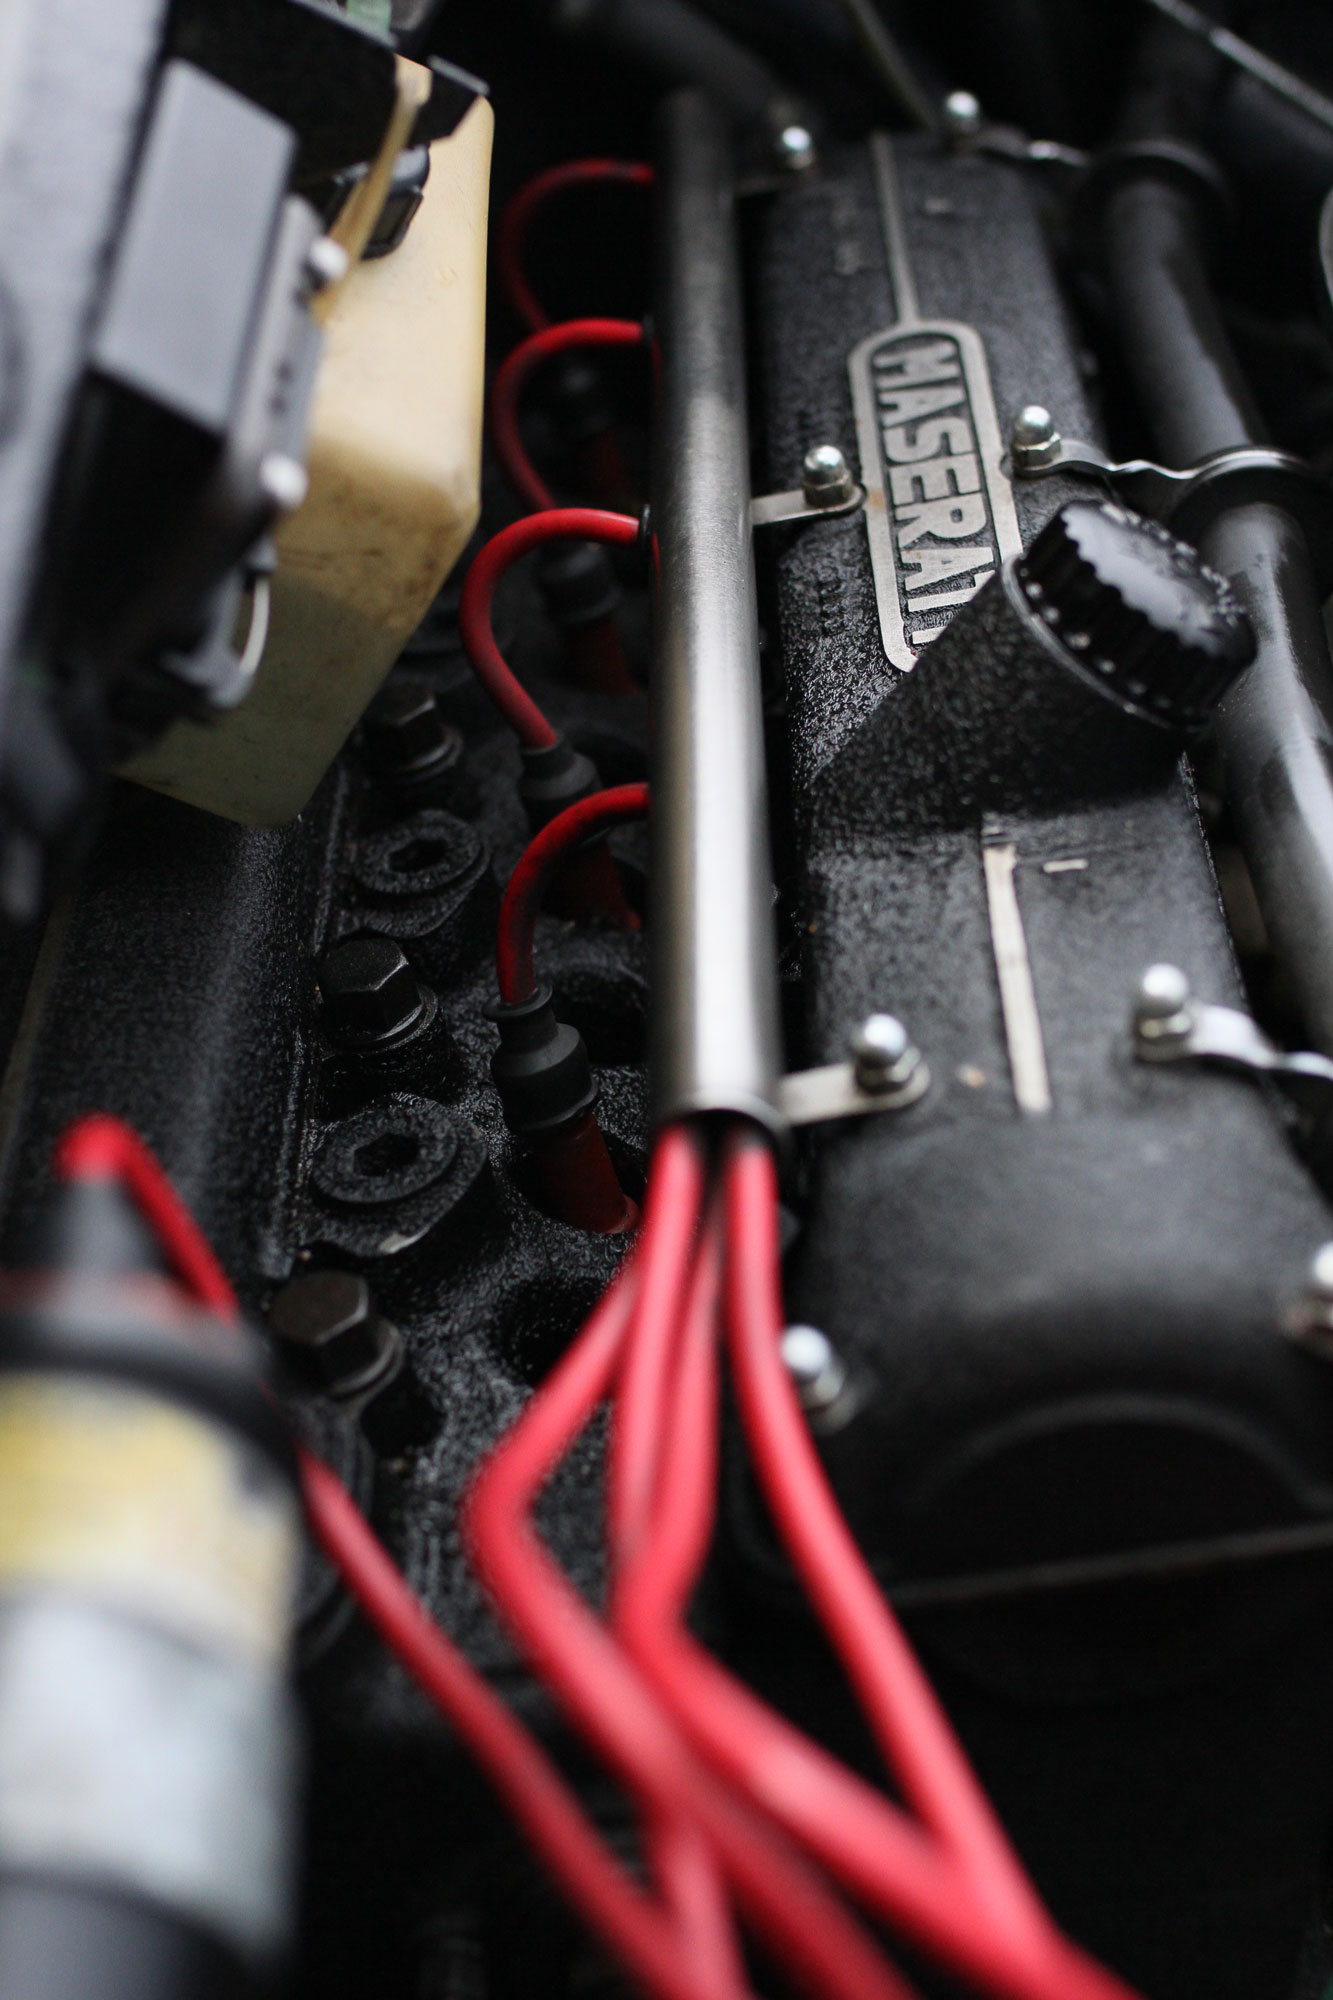 Black cylinder block with Maserati text on, and red ignition cables with extra holes sparkplugs holes